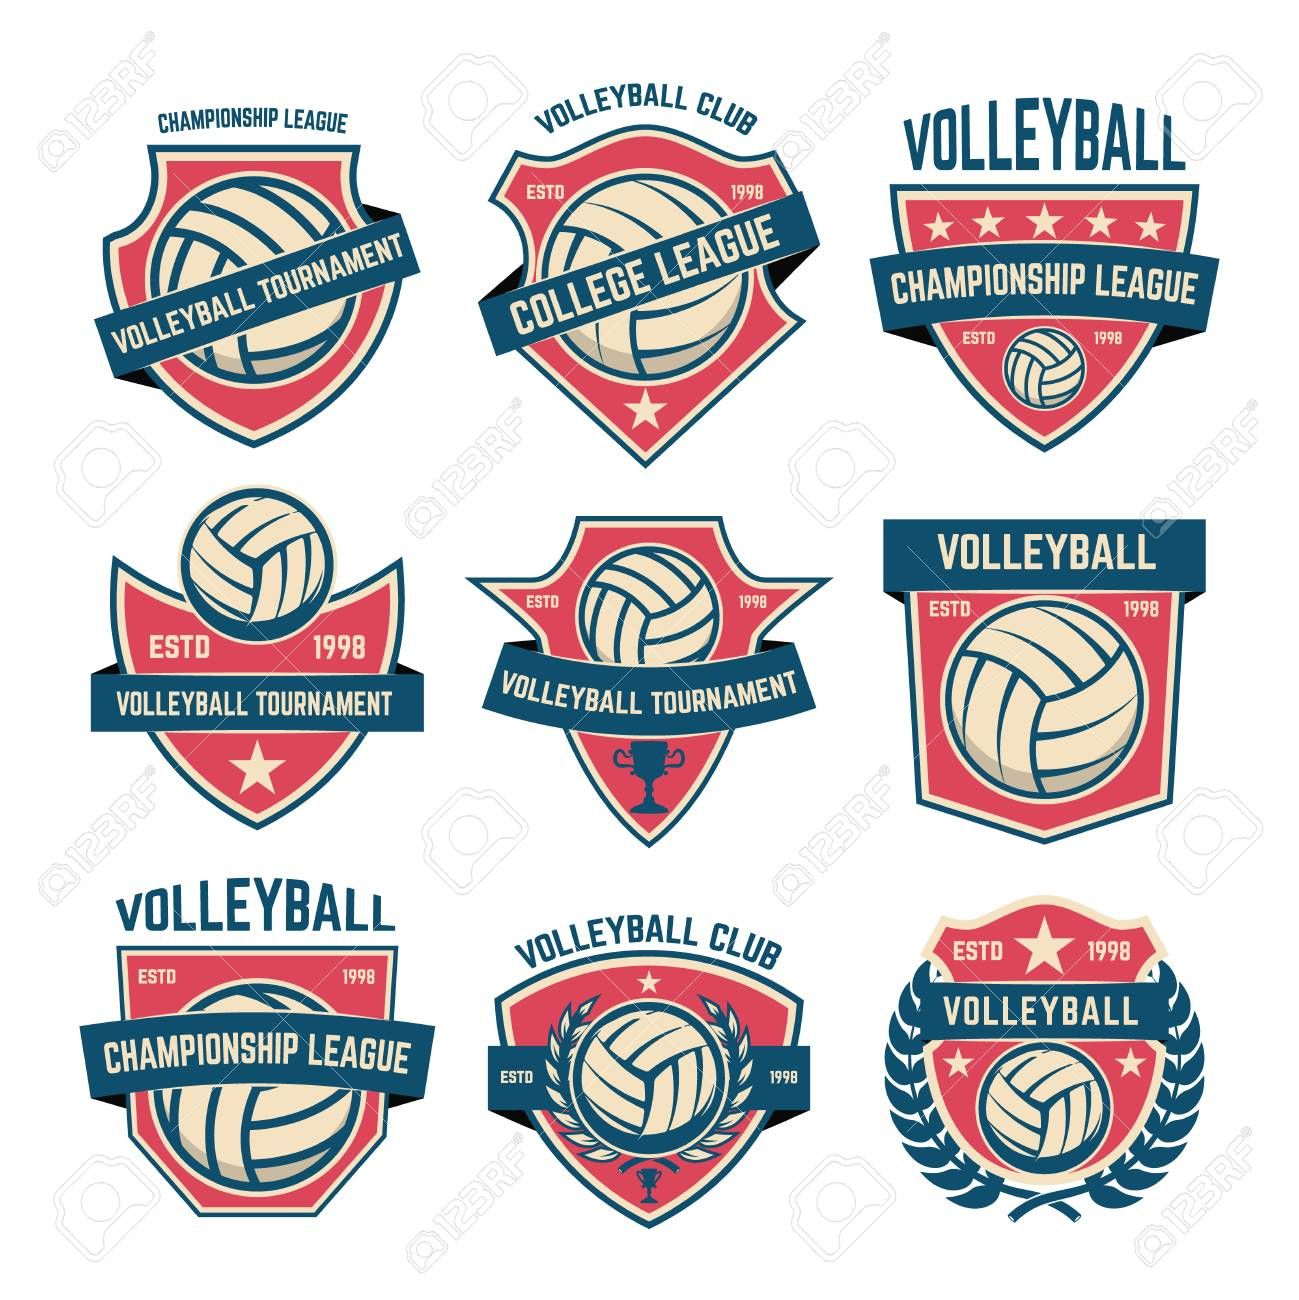 Set Of Volleyball Club Emblems Volleyball Tournament Design Element For Logo Label Emblem Sign In 2020 Volleyball Tournaments Volleyball Clubs Sports Logo Design